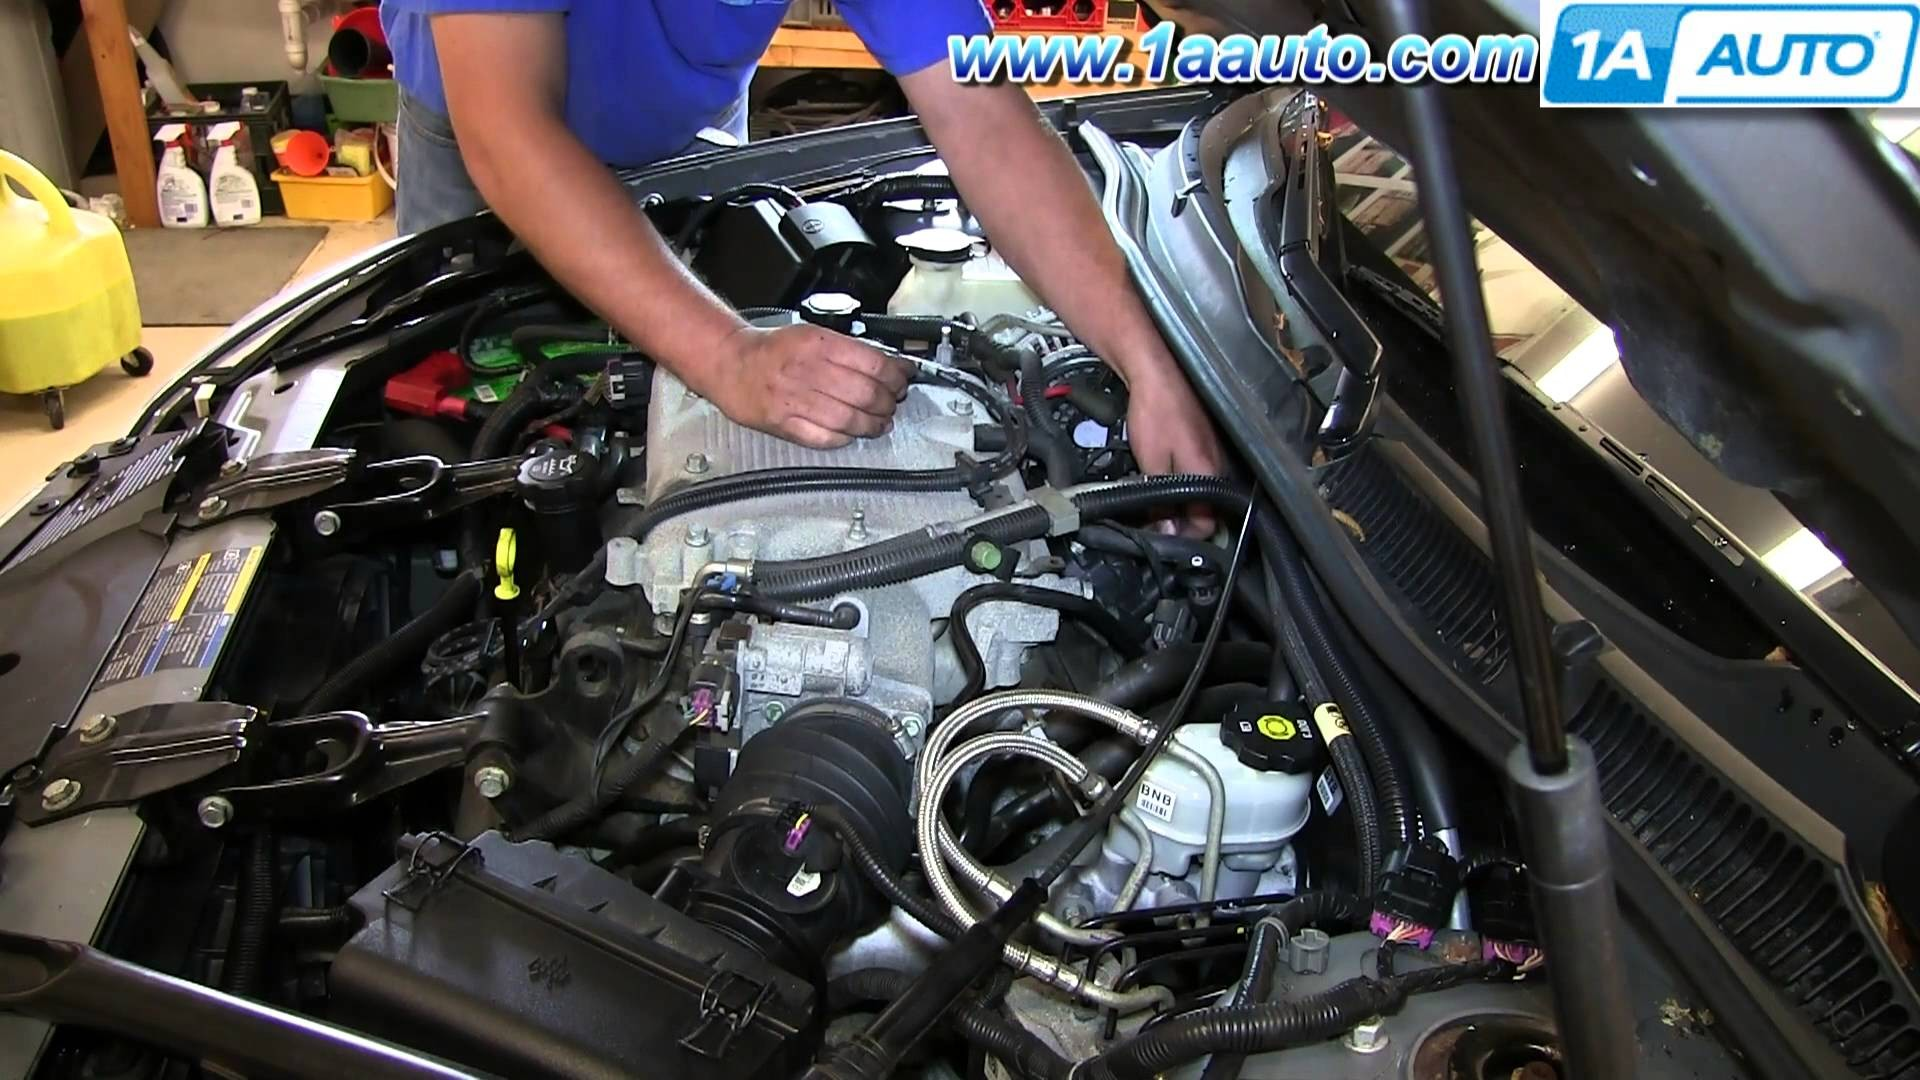 2007 Chevy Uplander Engine Diagram How to Replace Install Engine Ignition  Coil 2006 12 Chevy Impala